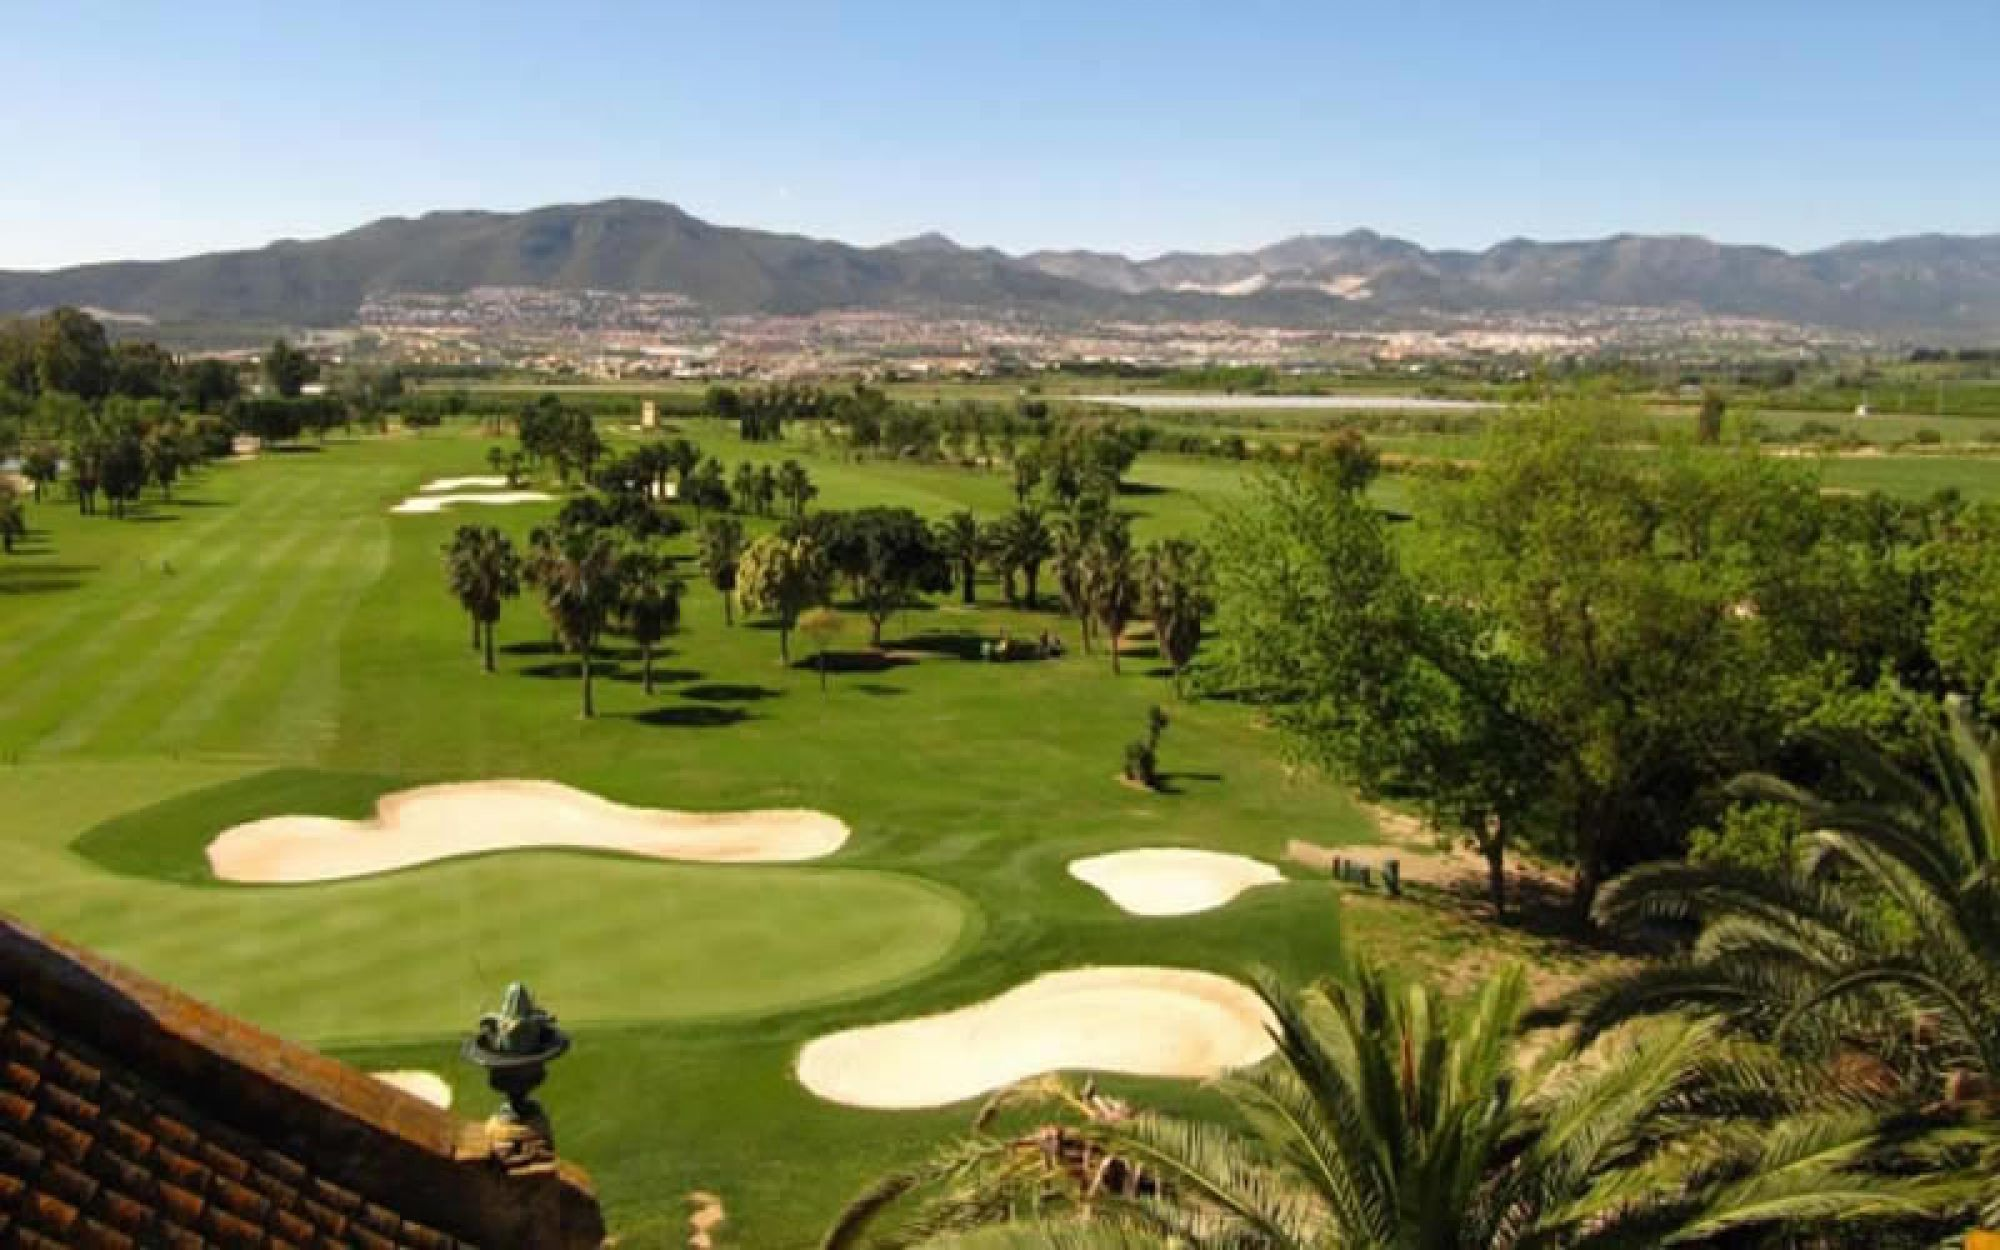 View Guadalhorce Golf Club's picturesque golf course situated in sensational Costa Del Sol.